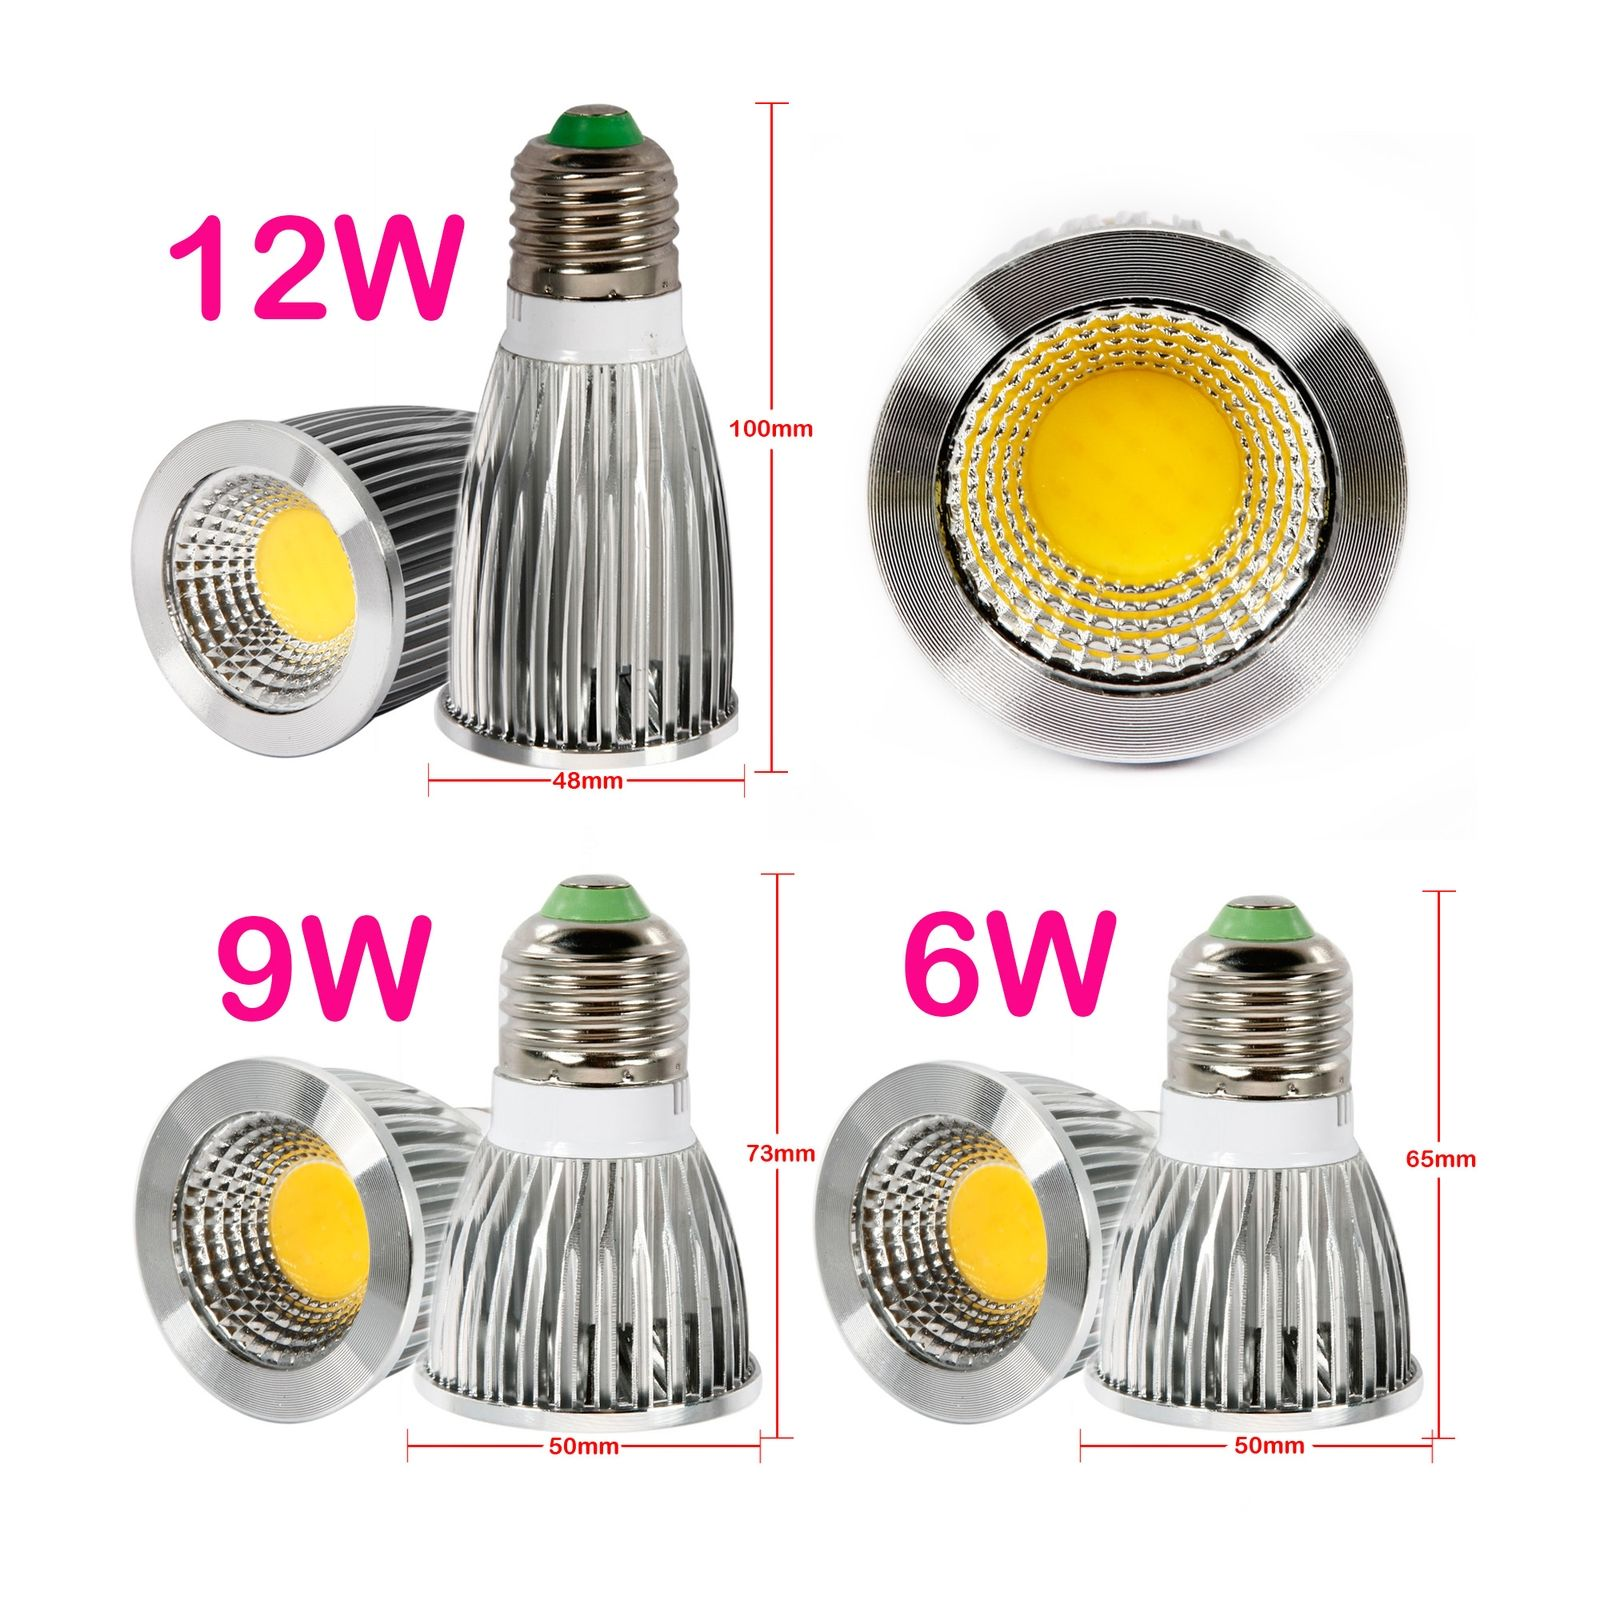 super bright 6w 9w 12w mr16 gu10 e27 dimmable led cob spot downlight bulb lights ebay. Black Bedroom Furniture Sets. Home Design Ideas